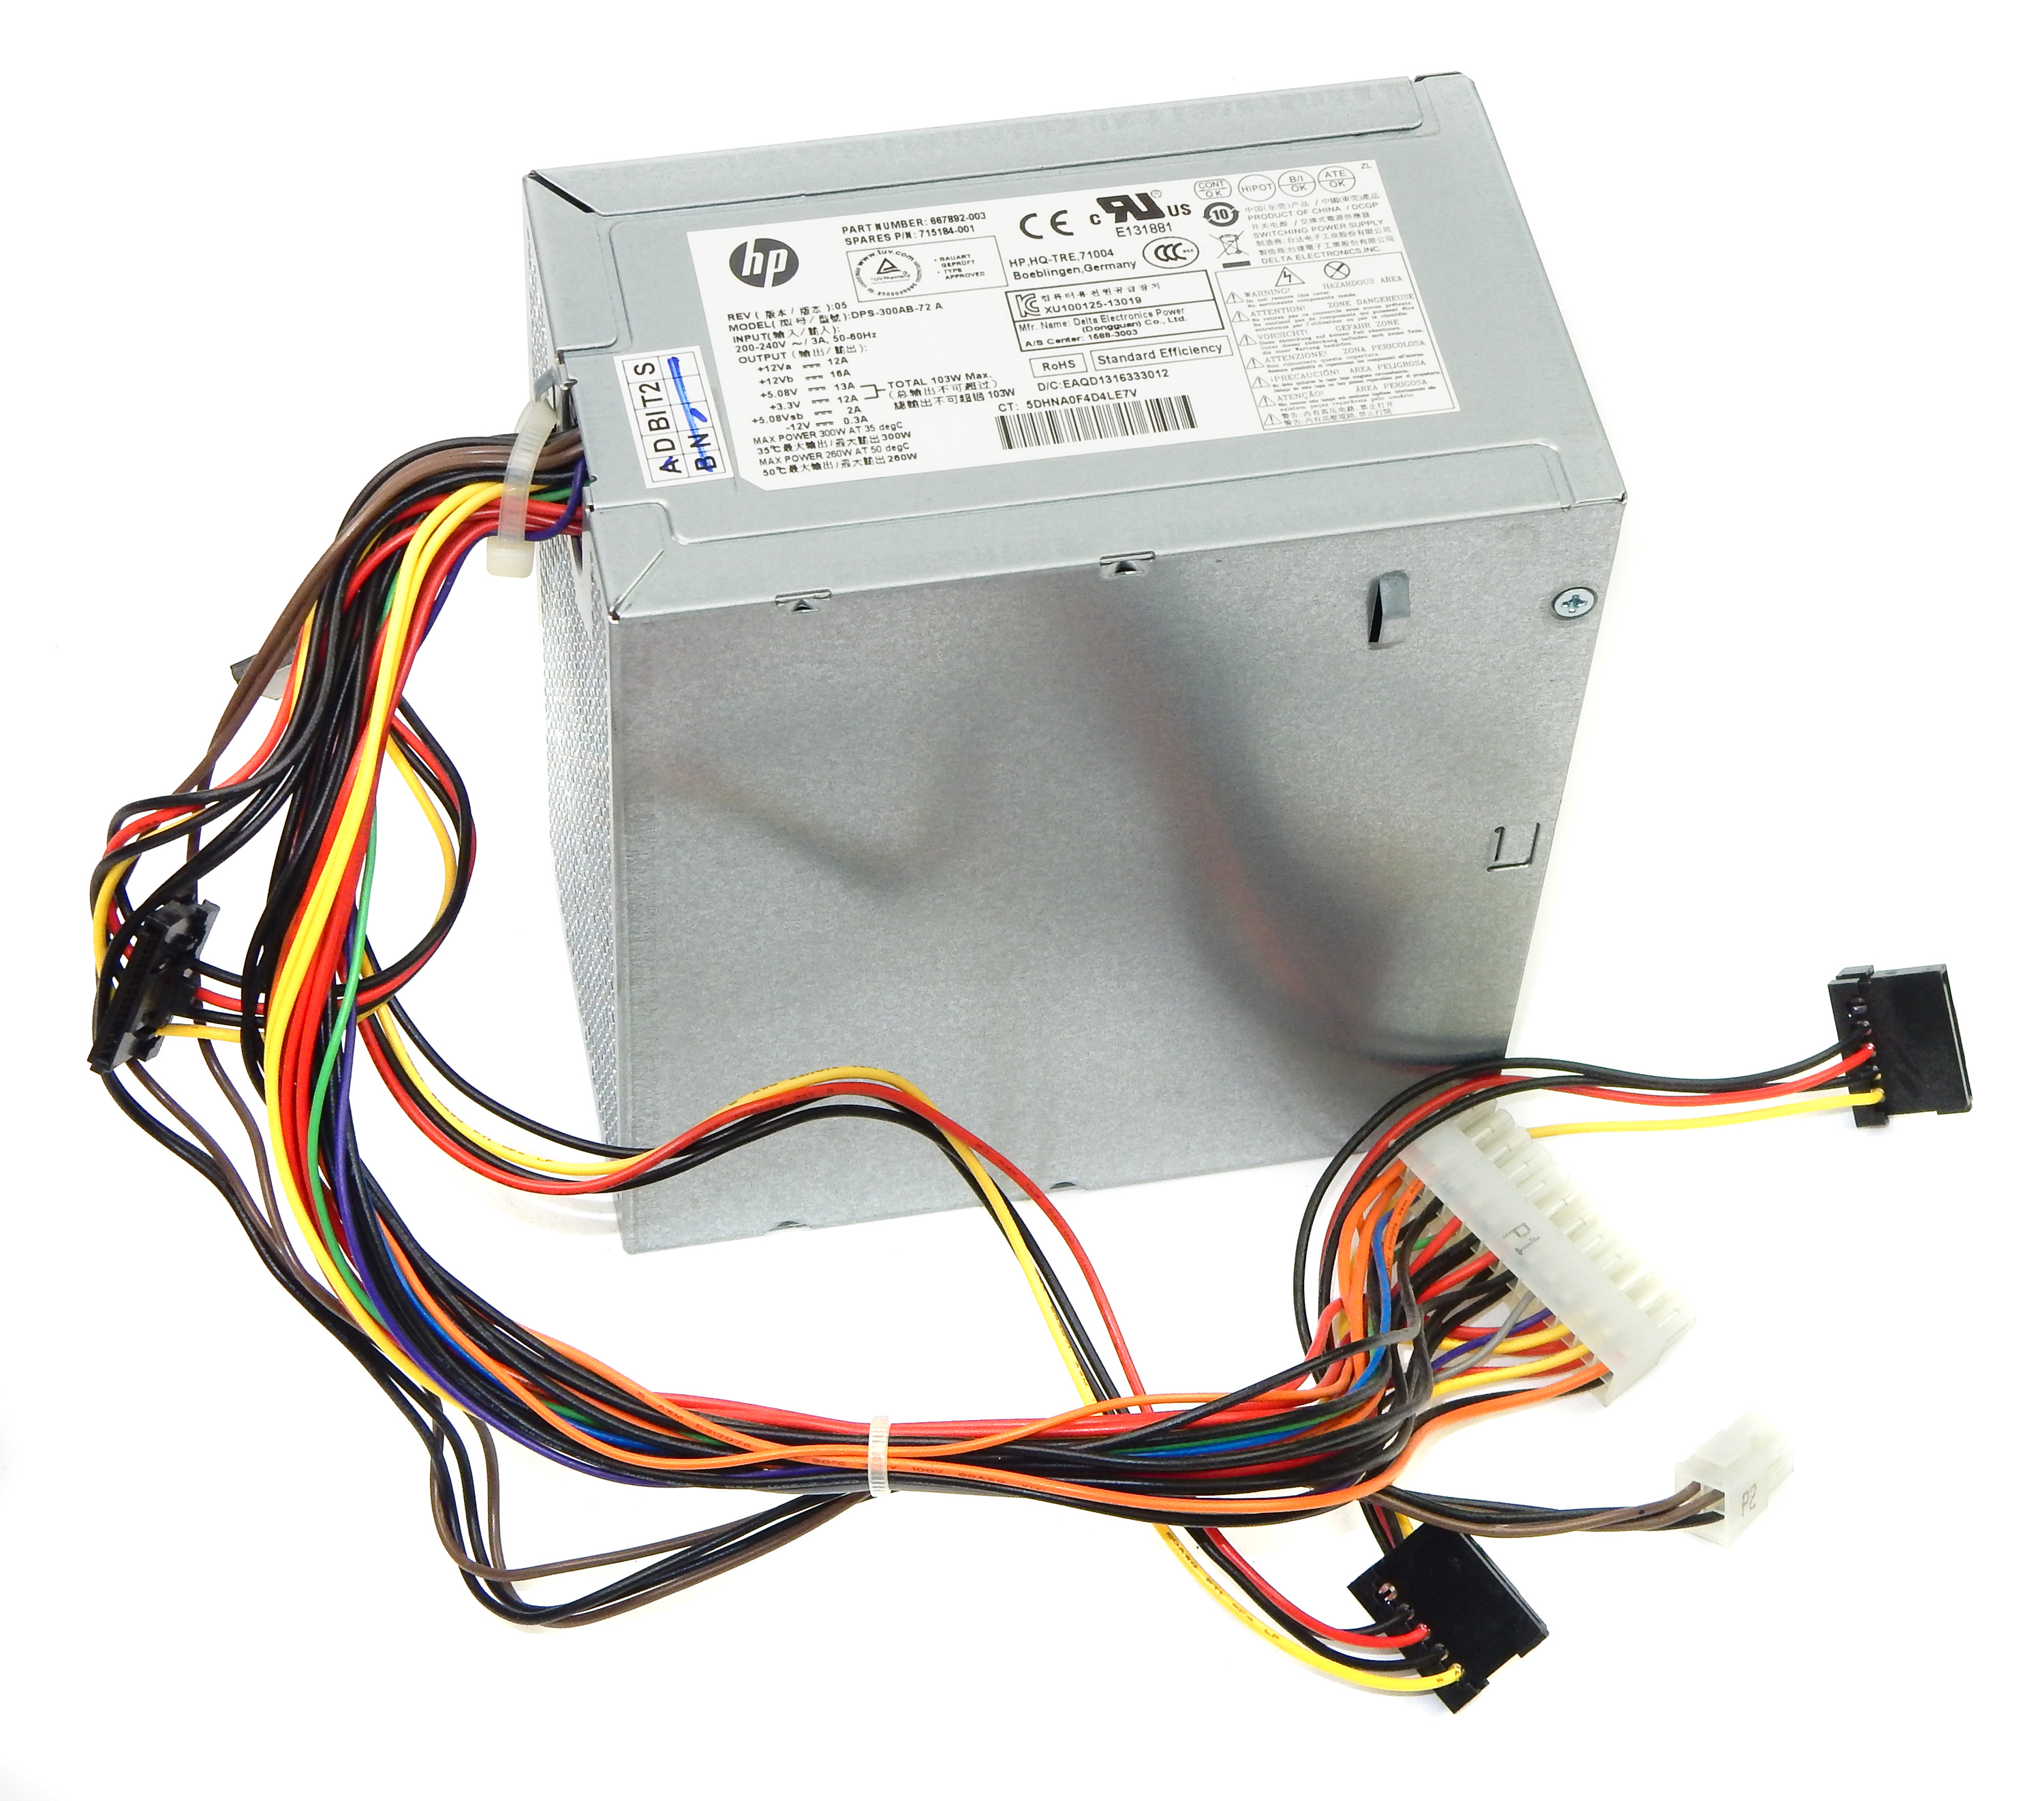 HP 715184-001 300W 24 Pin ATX Power Supply Unit - Delta DPS-300AB-72